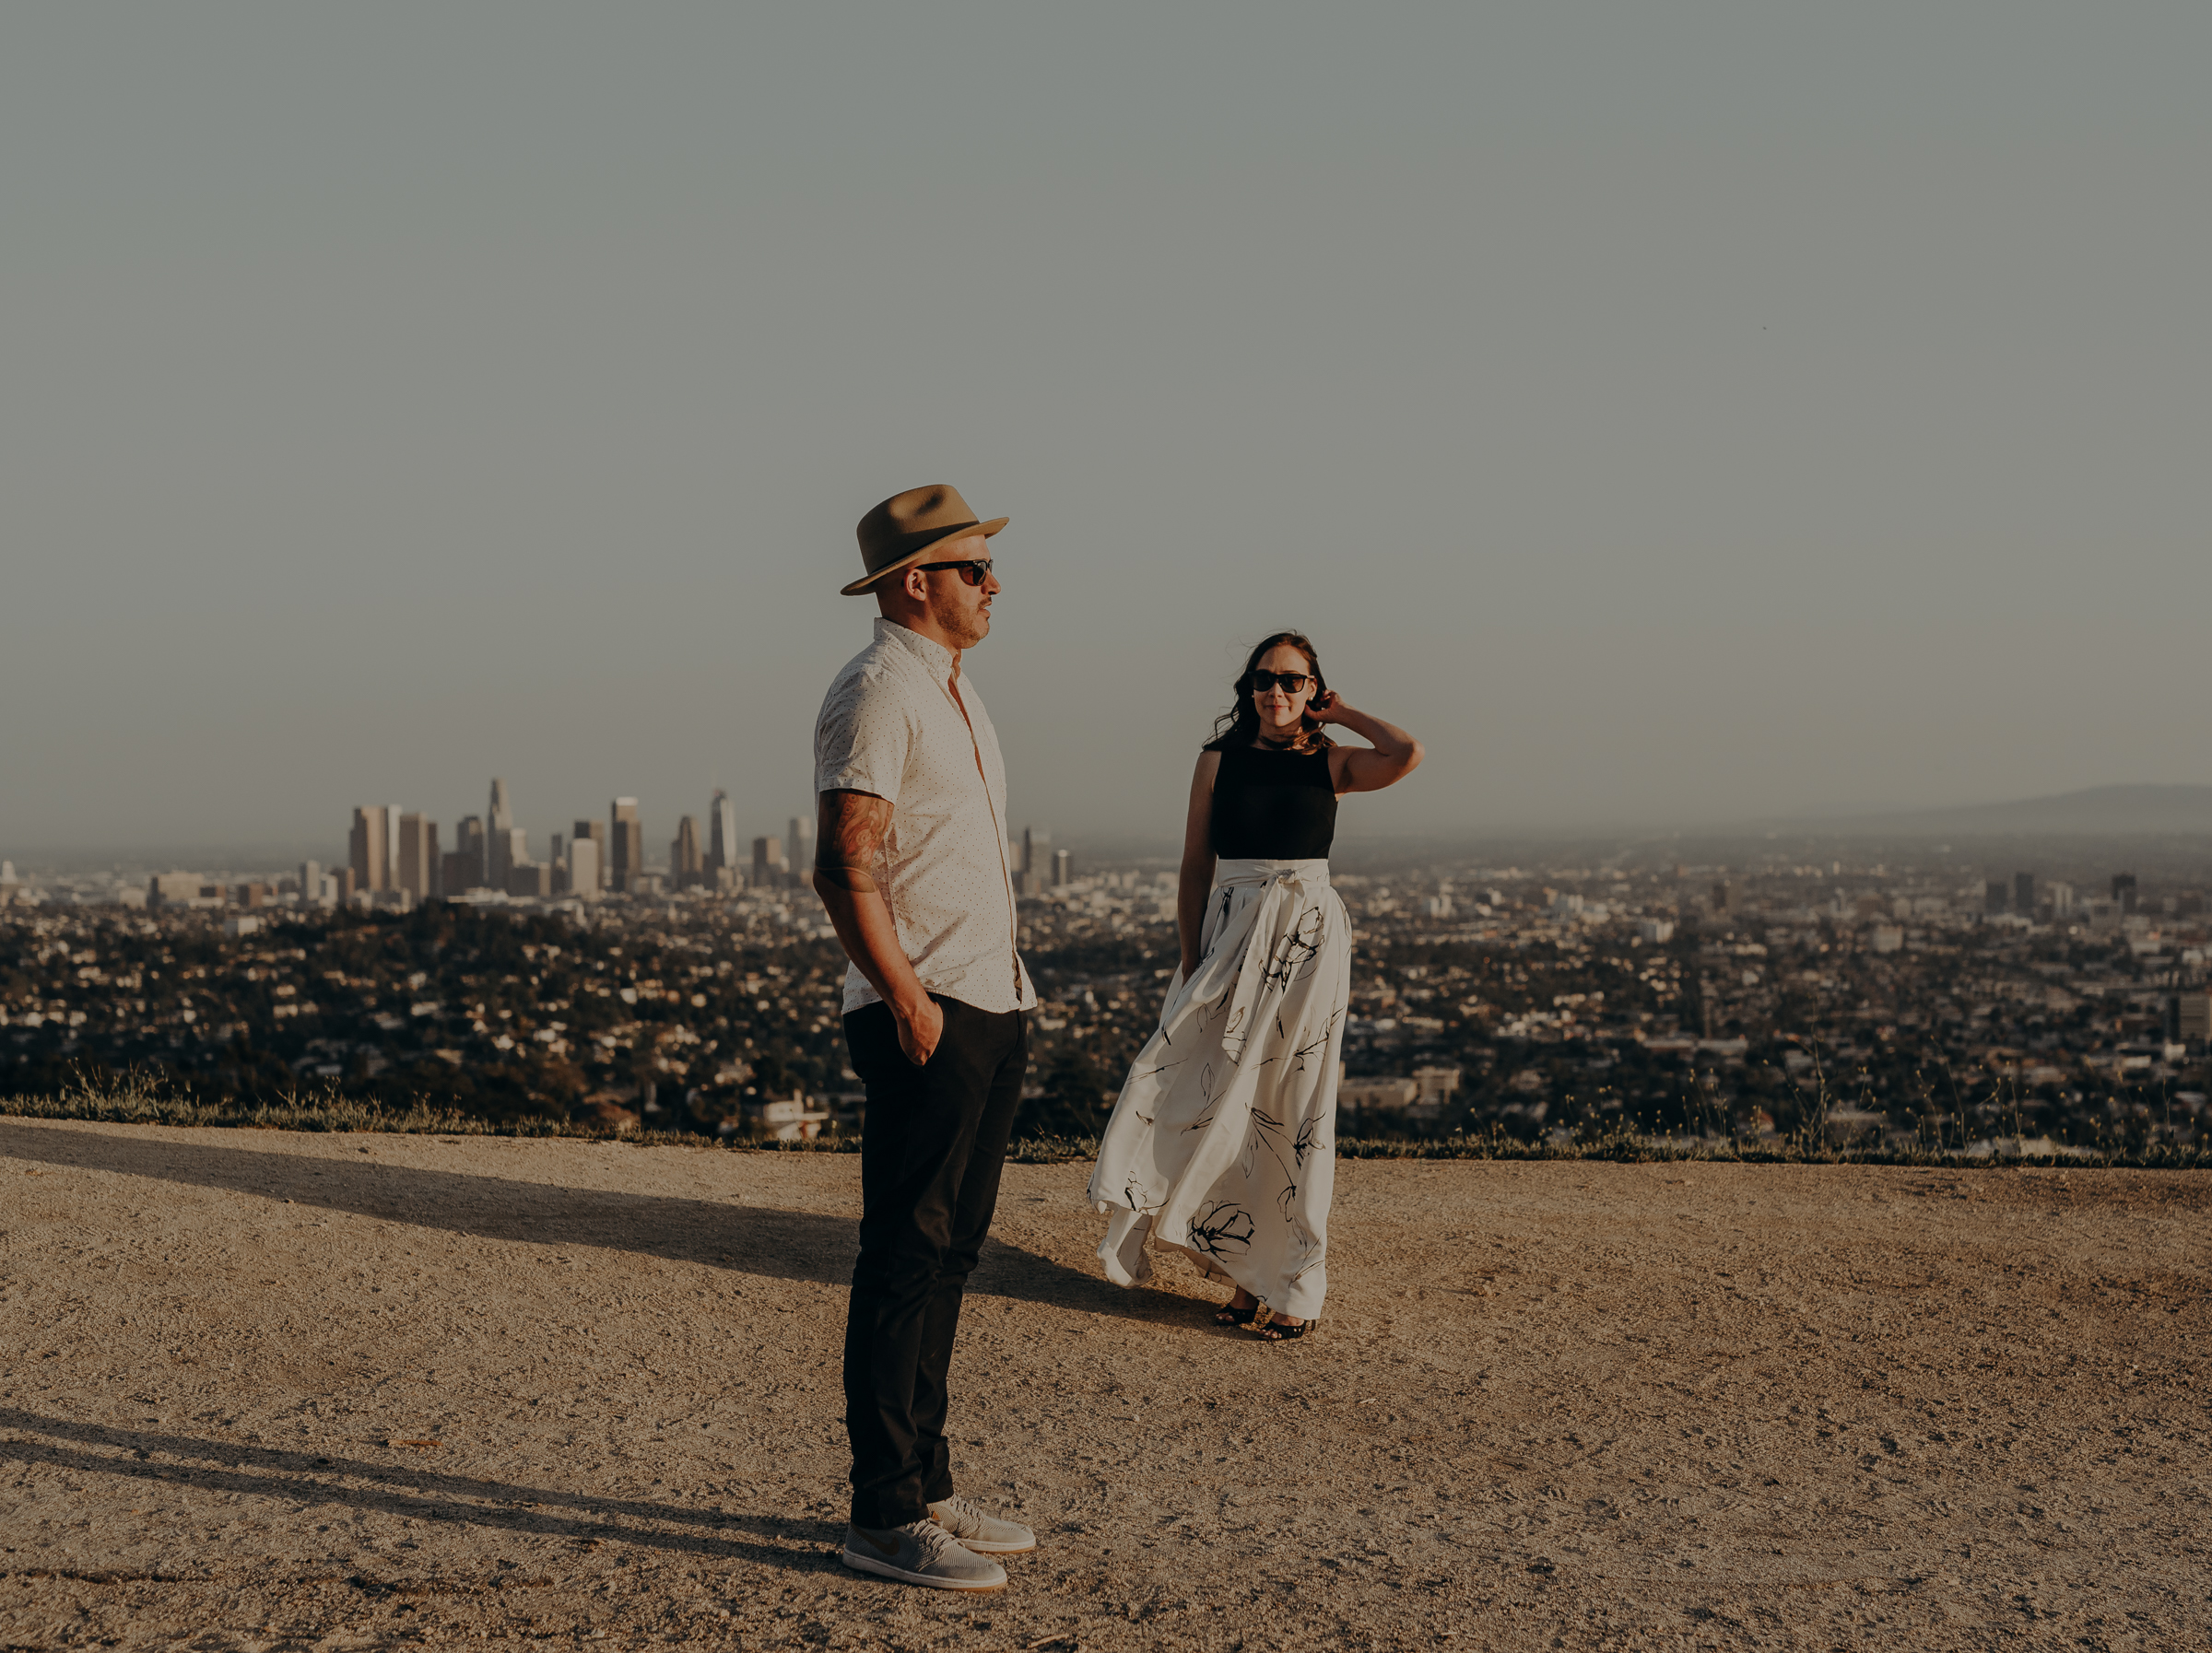 Los Angeles Wedding Photographers - Griffith Park Engagement - IsaiahAndTaylor.com-032.jpg